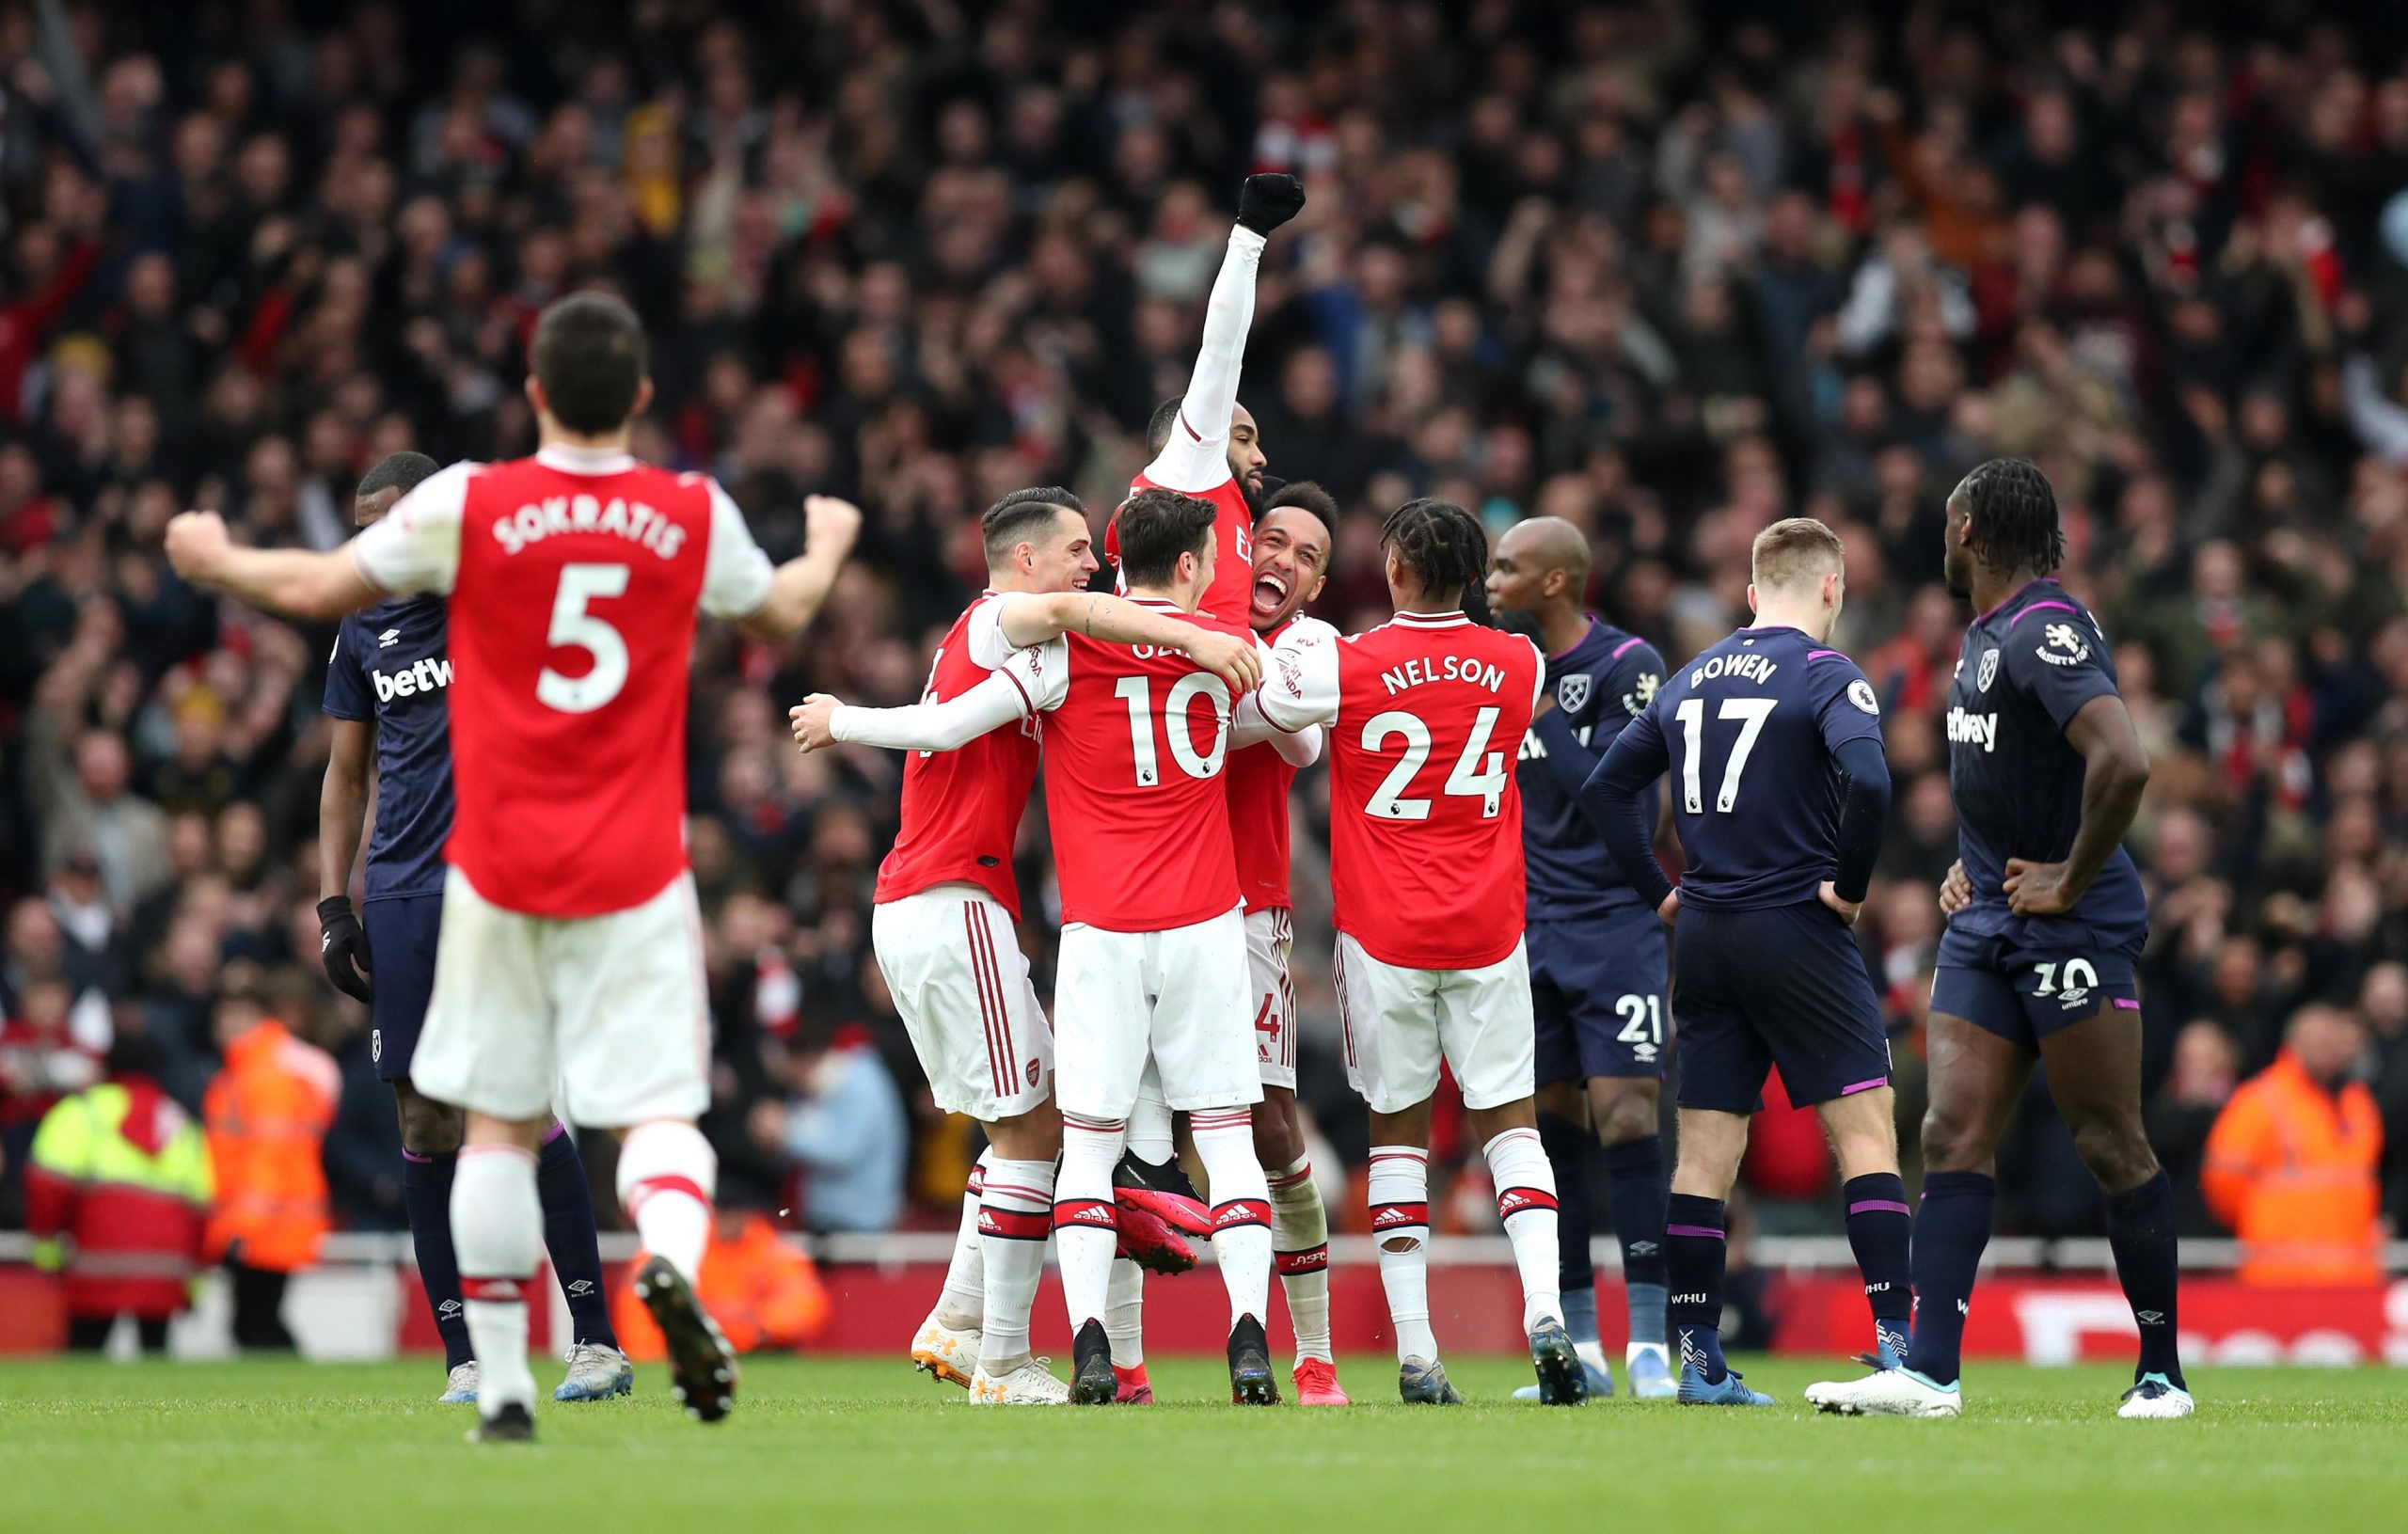 EPL: Lacazette On Target As Arsenal Seal Narrow West Ham Win